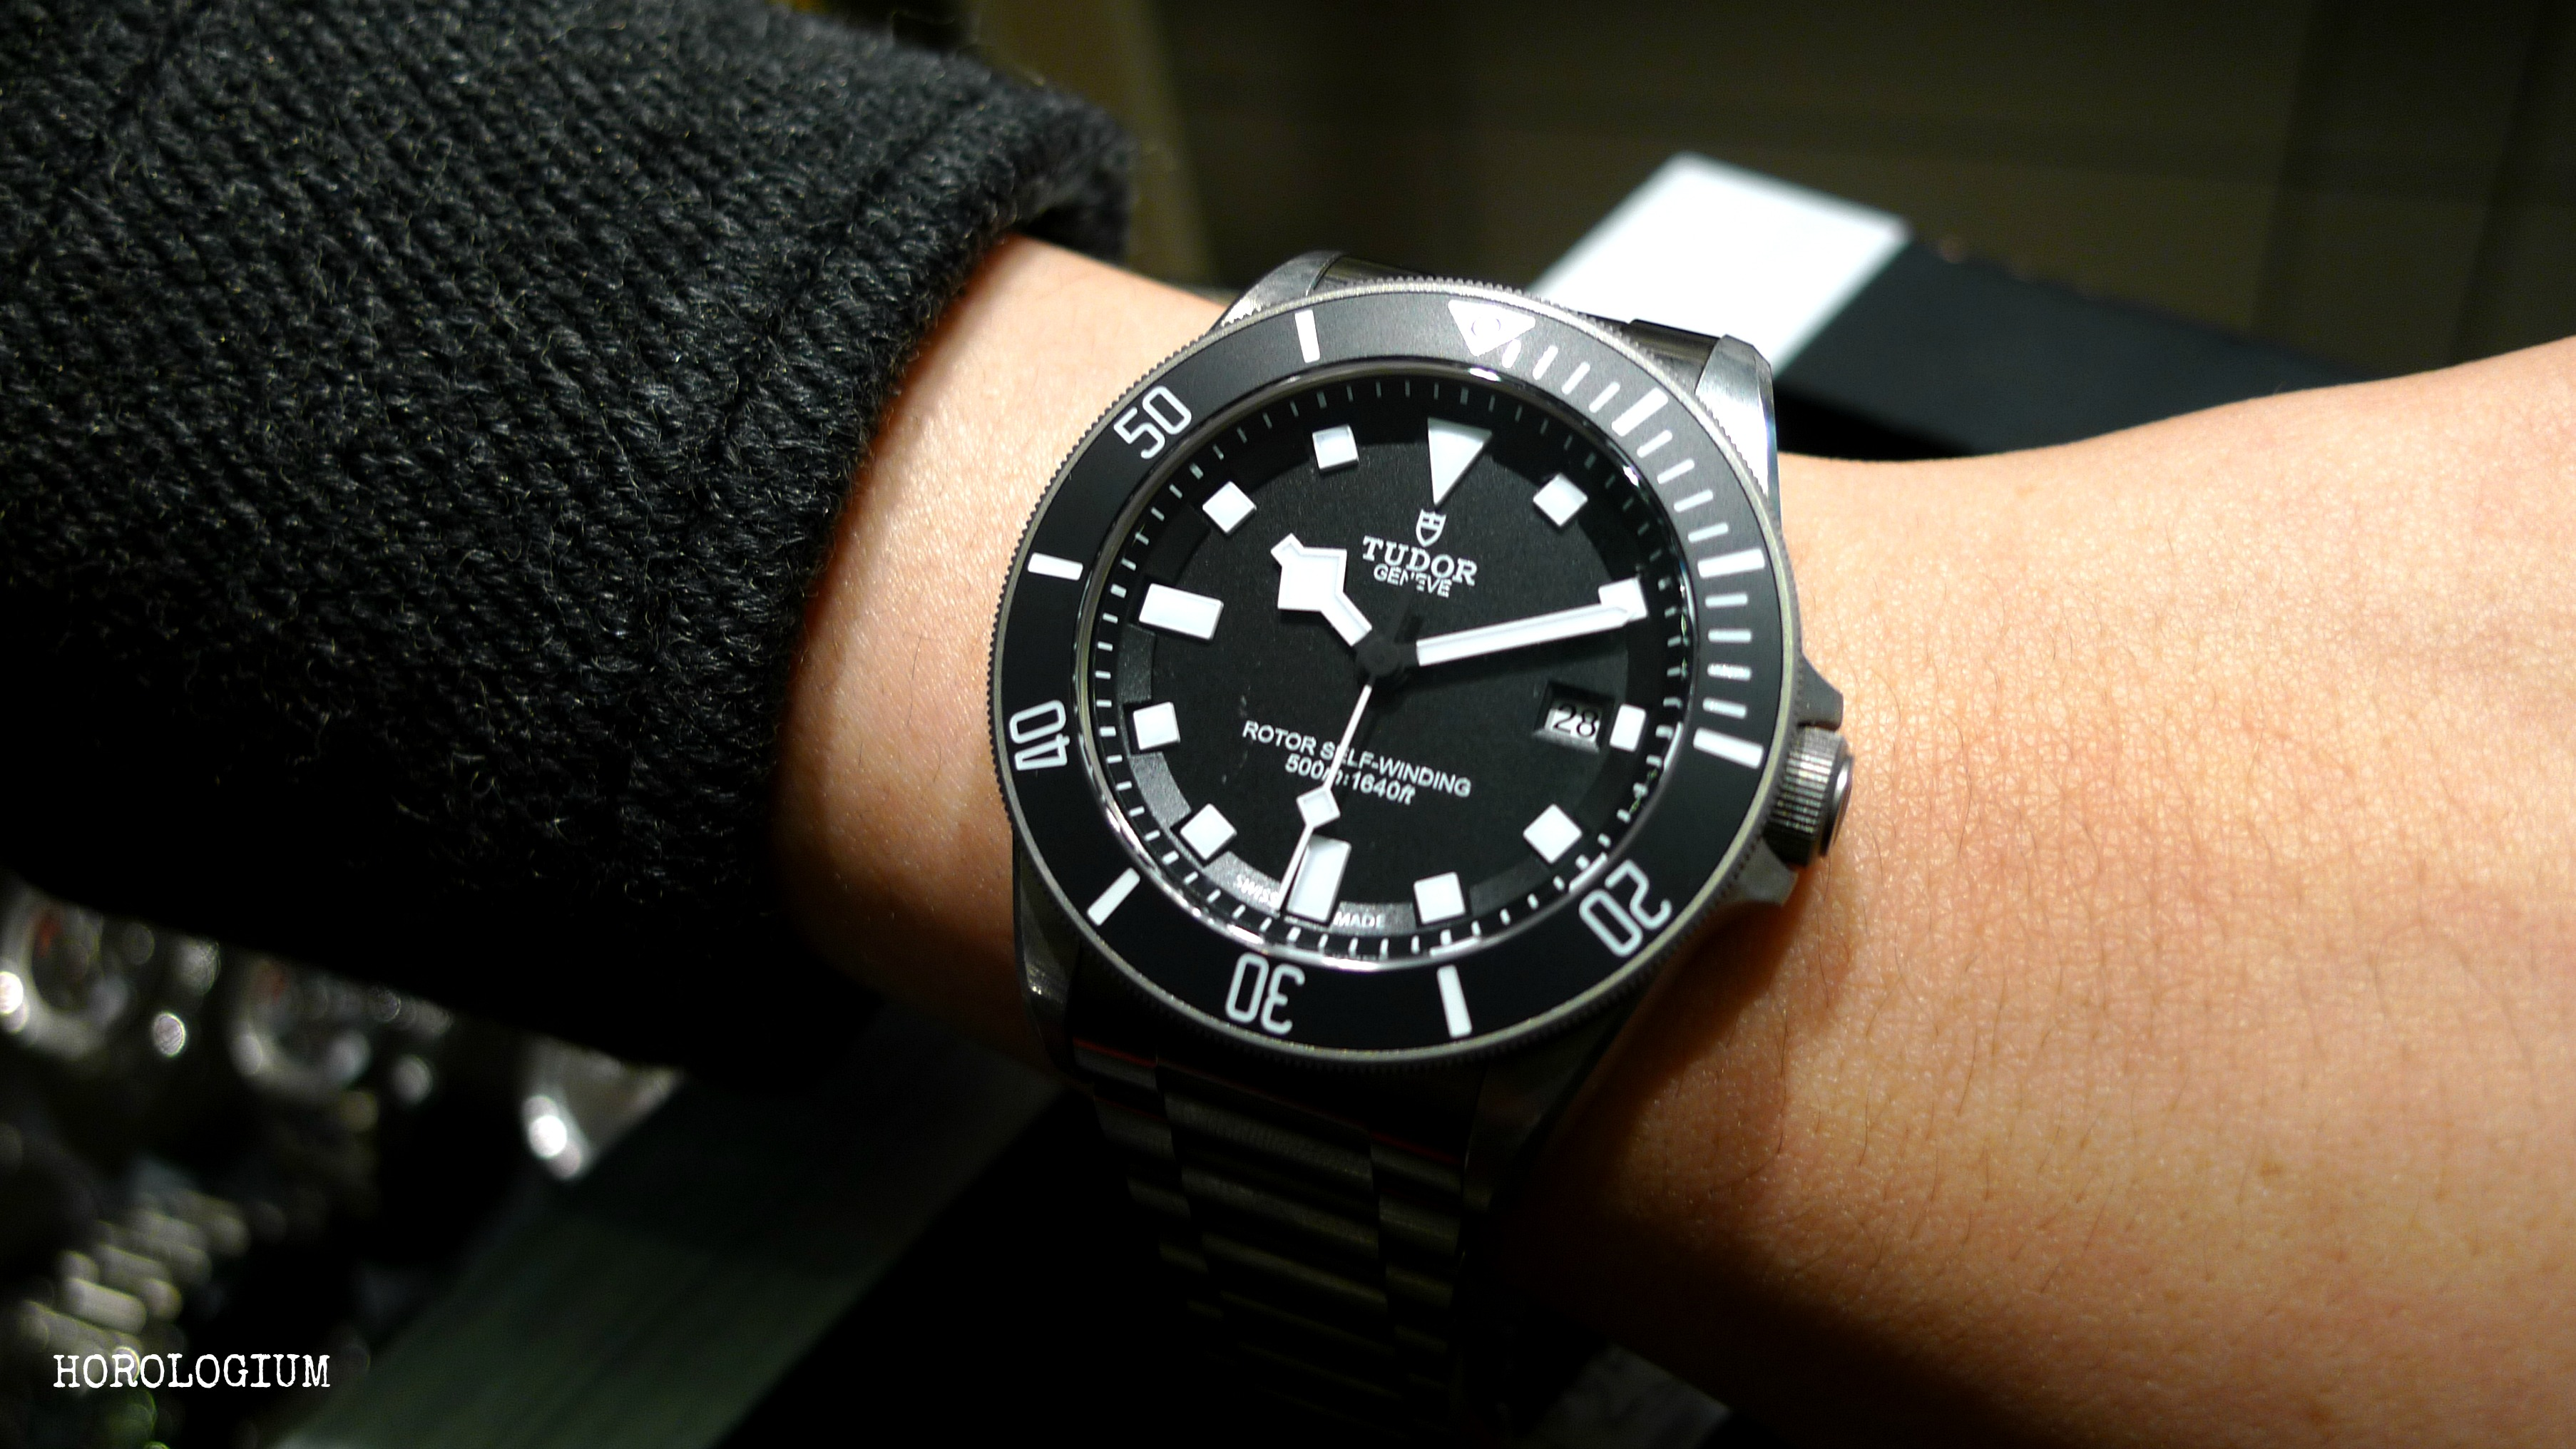 Tudor S Black Bay Vs Pelagos Horologium